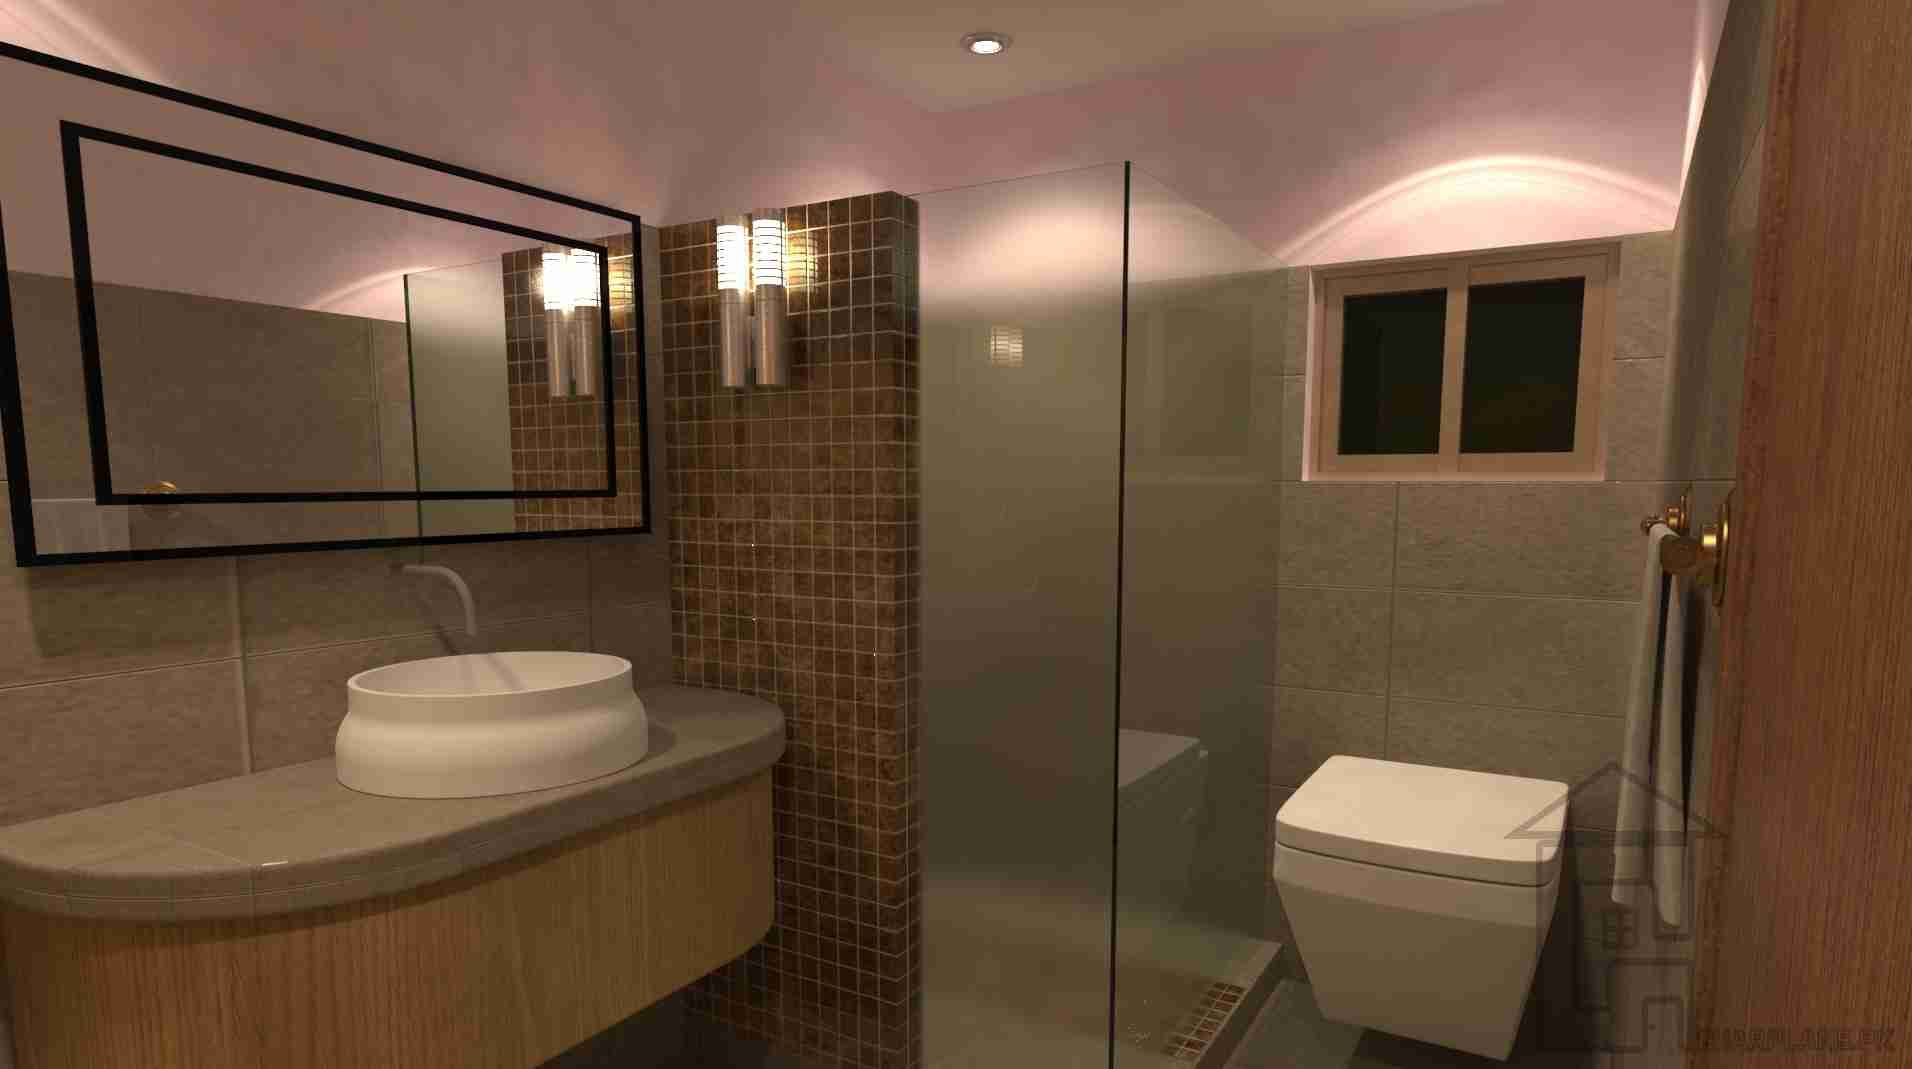 Pakistani bathroom design ideas  Latest bathroom designs